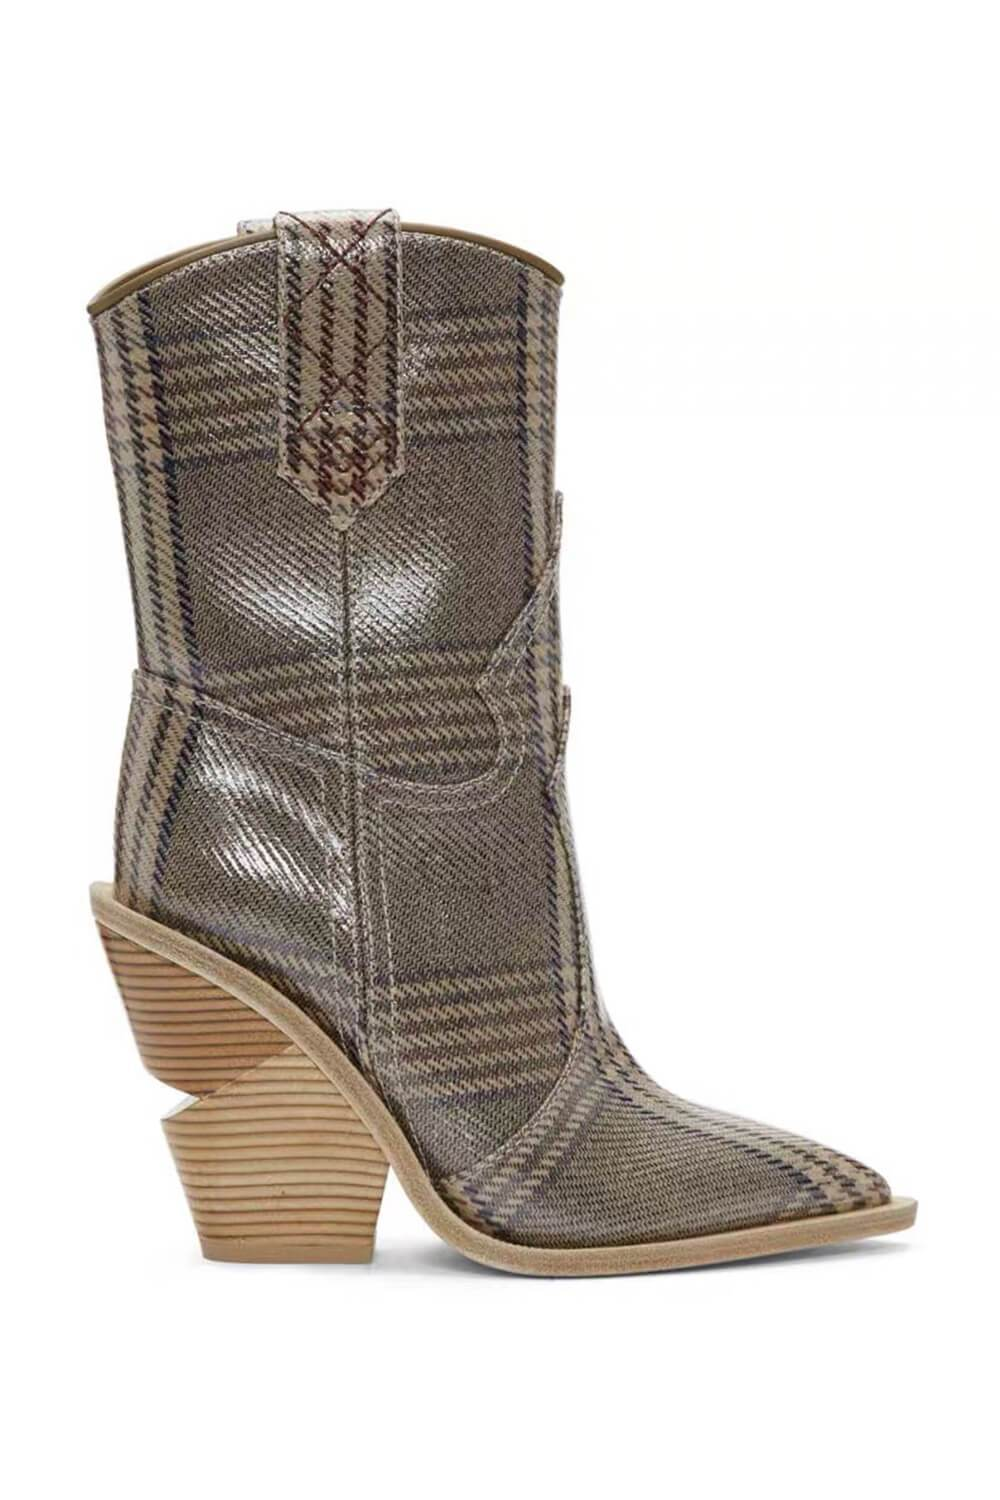 Plaid Print Croc Cut-Out Heel Mid Western Cowboy Boots (4163099328571)